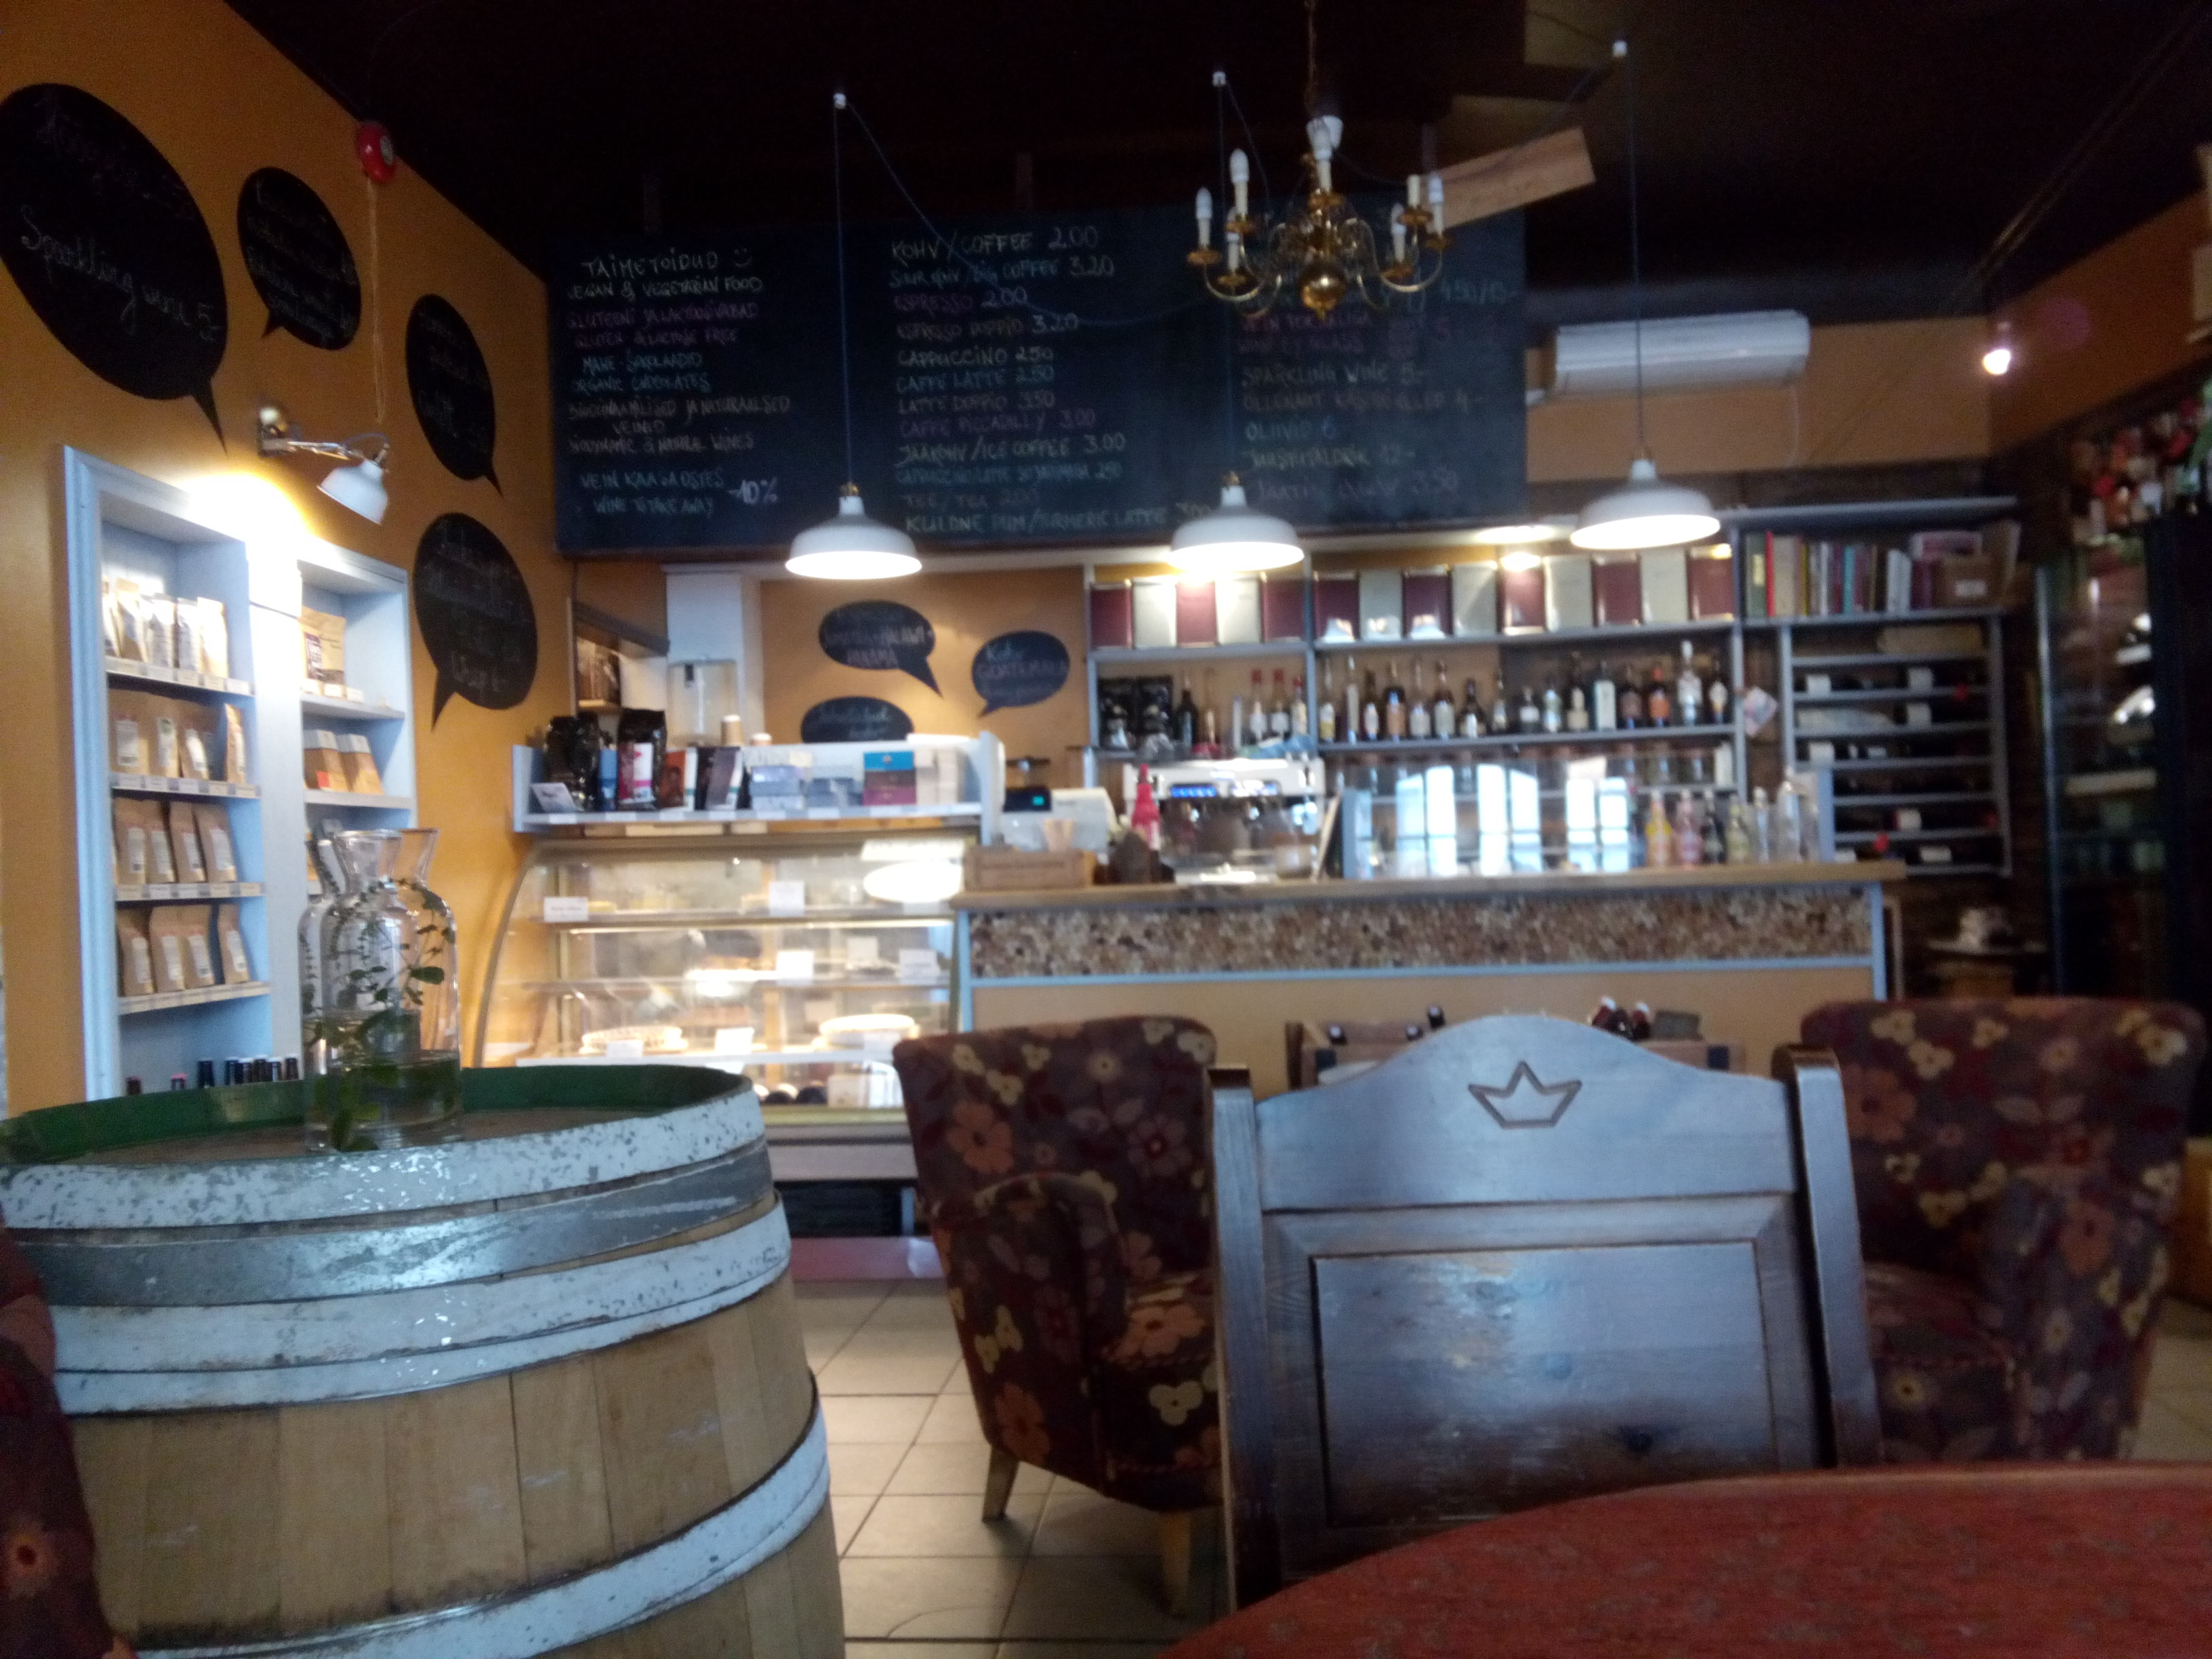 A cafe interior with wooden chairs and barrels, red armchairs and a counter in teh background with shelves filled with delcious things